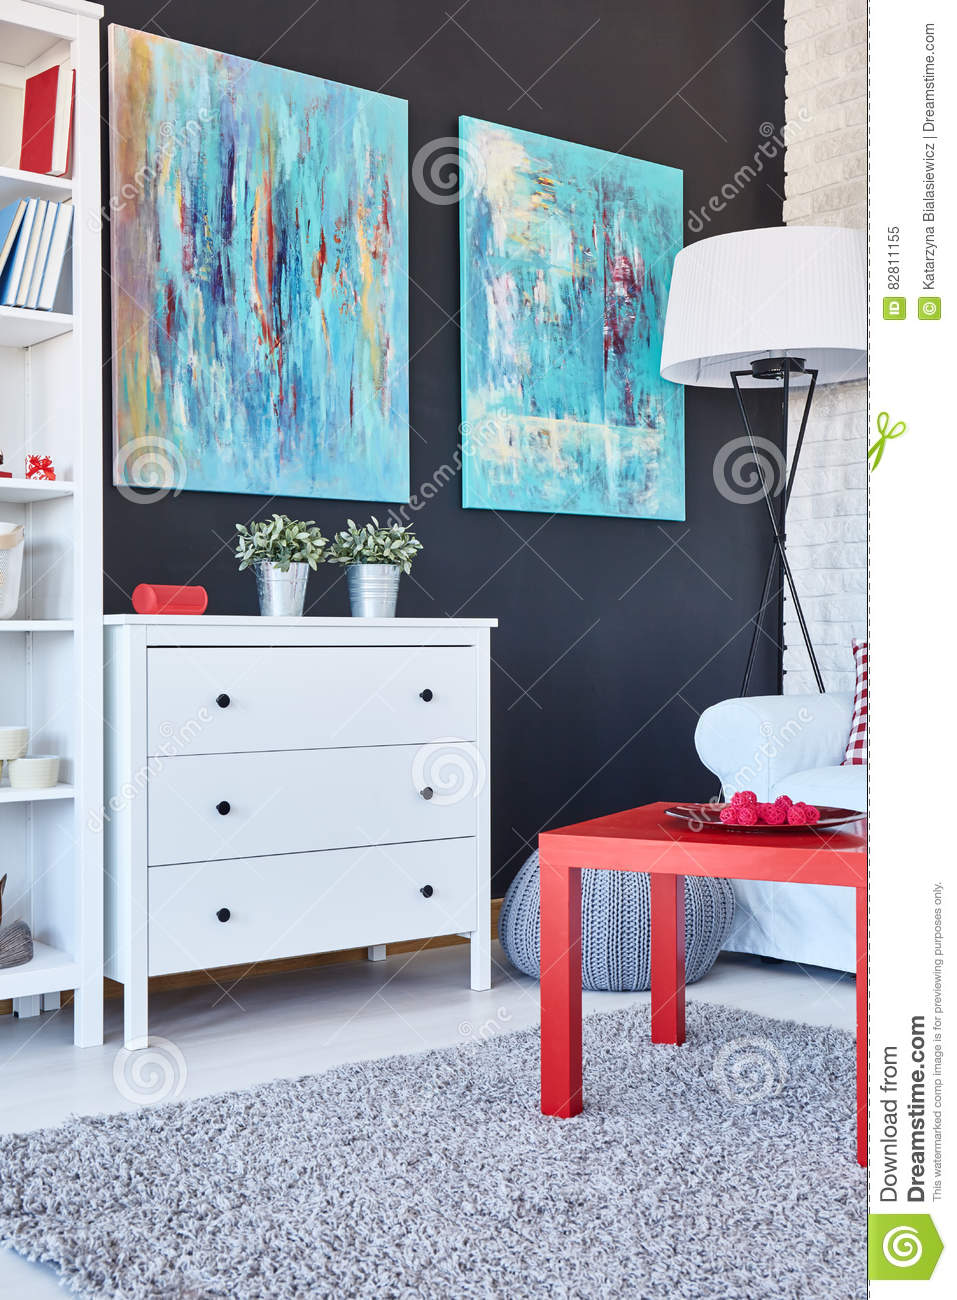 tabelle kommode und malereien in einem raum stockfoto. Black Bedroom Furniture Sets. Home Design Ideas